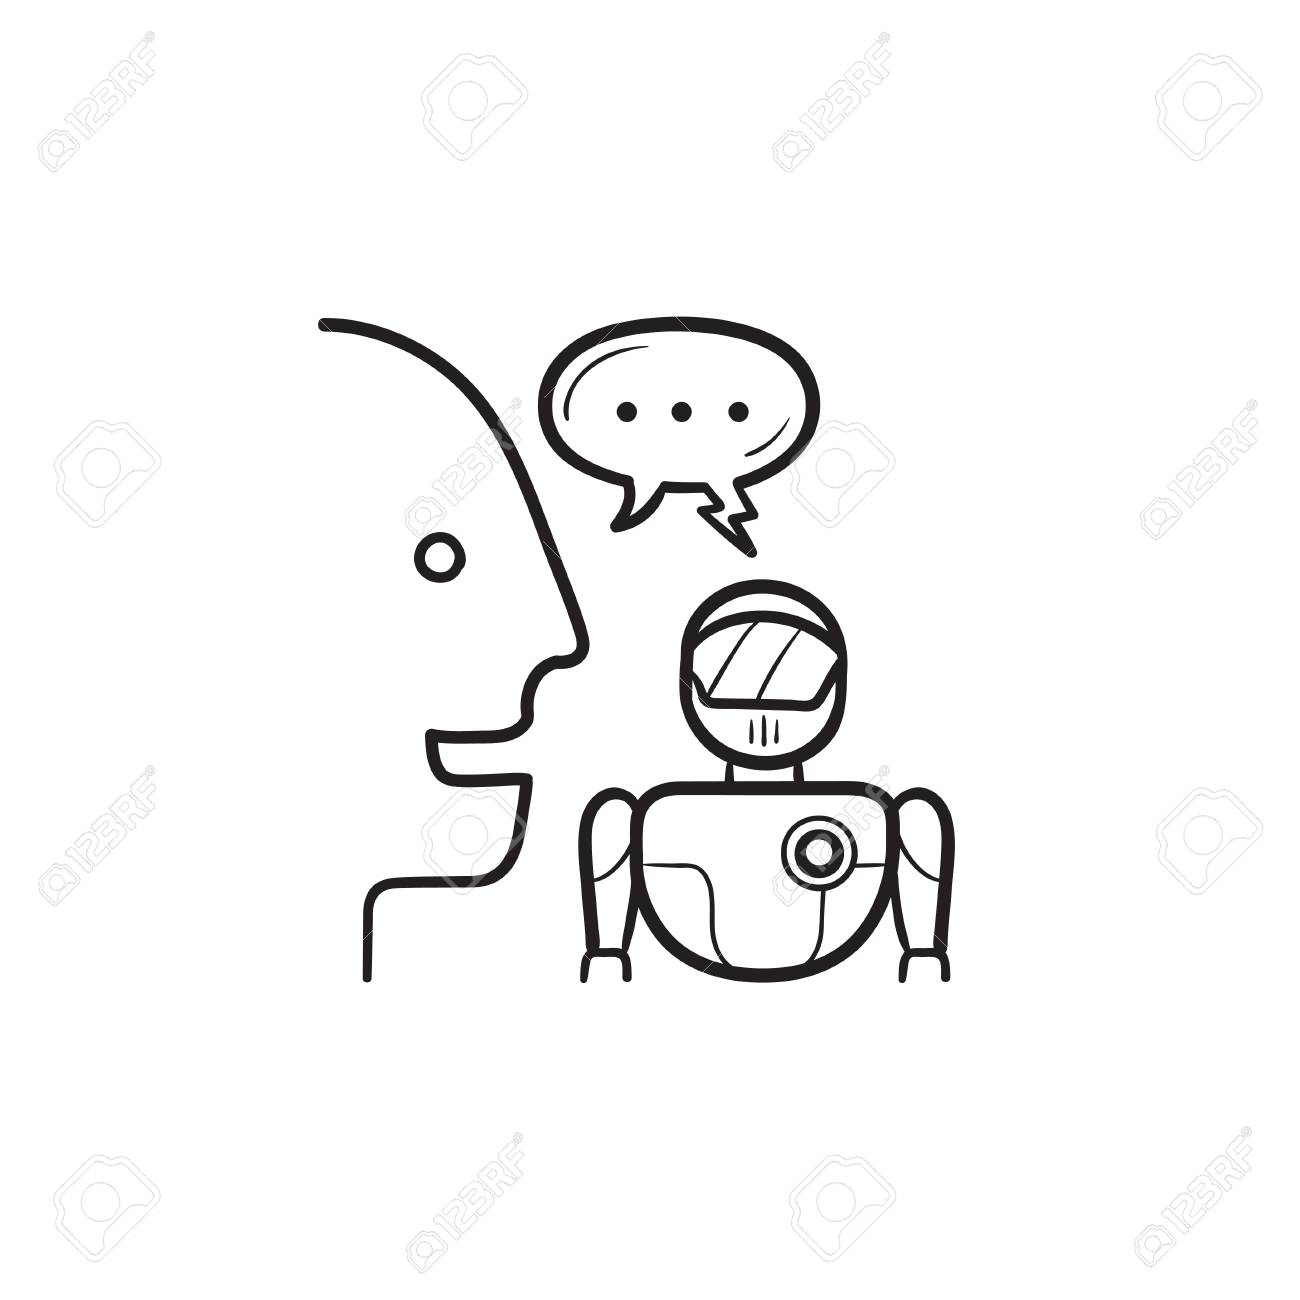 Human and robot communication and speech bubble hand drawn outline